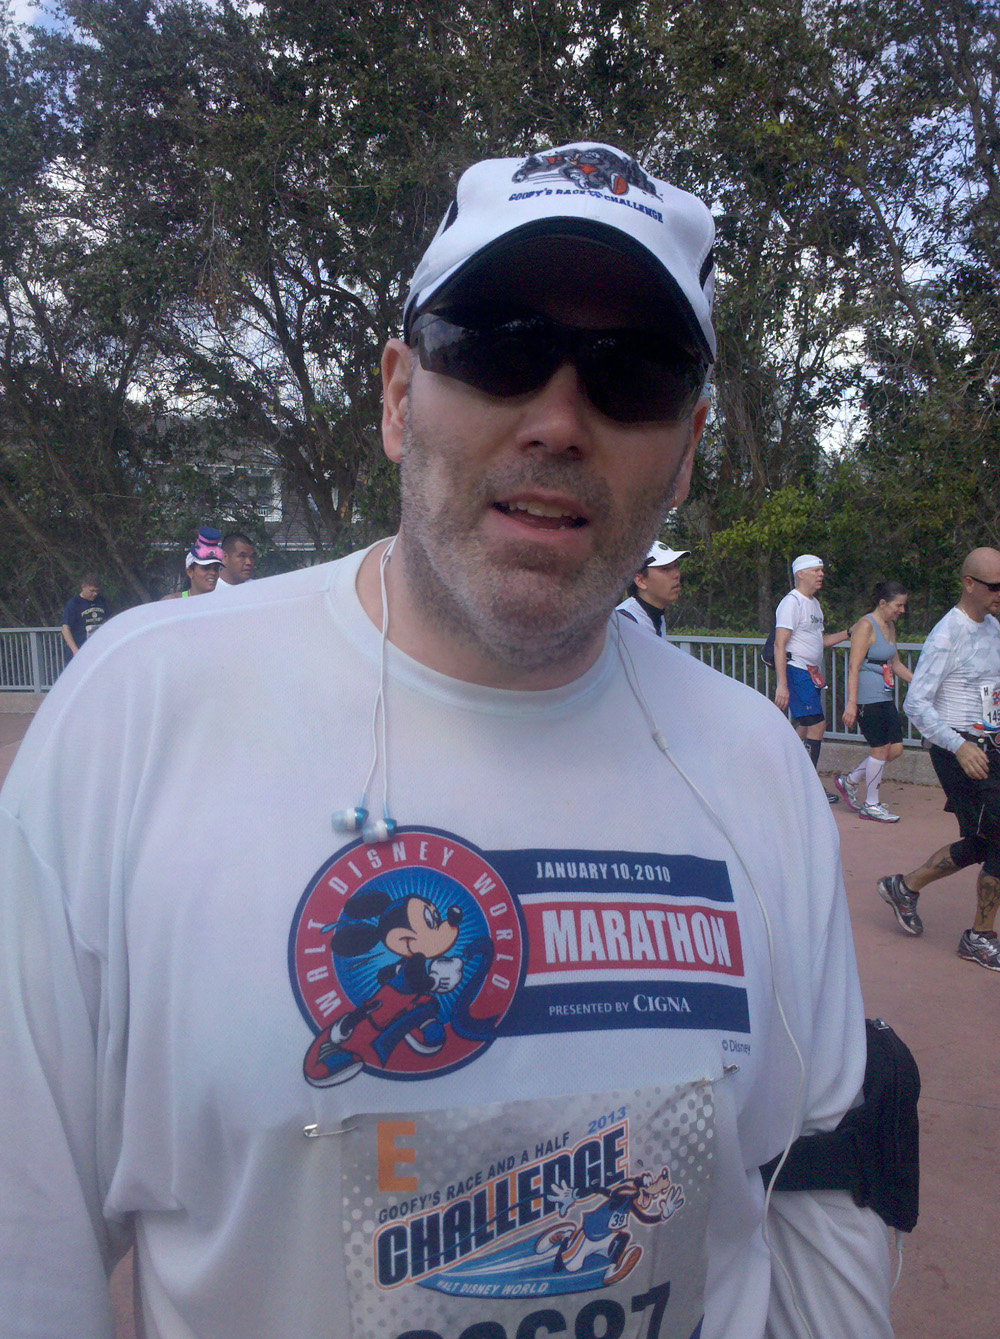 me just before entering Epcot with about 1.5 miles to go